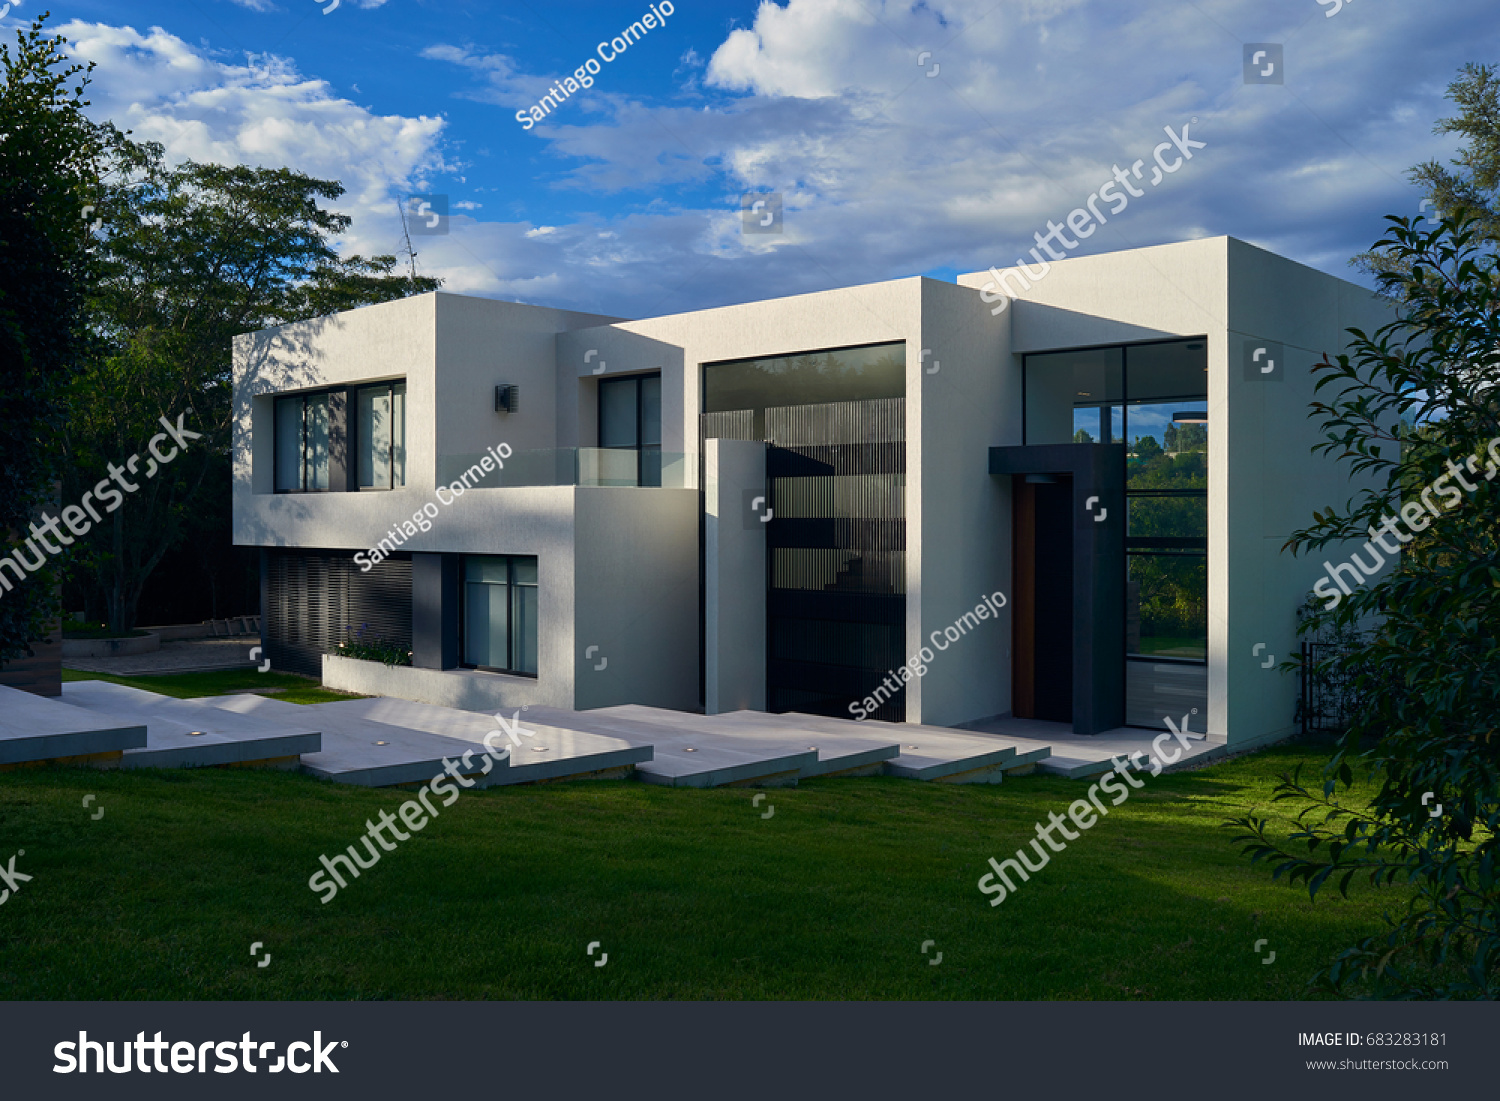 Big Modern Beautiful House Stock Photo Edit Now 683283181